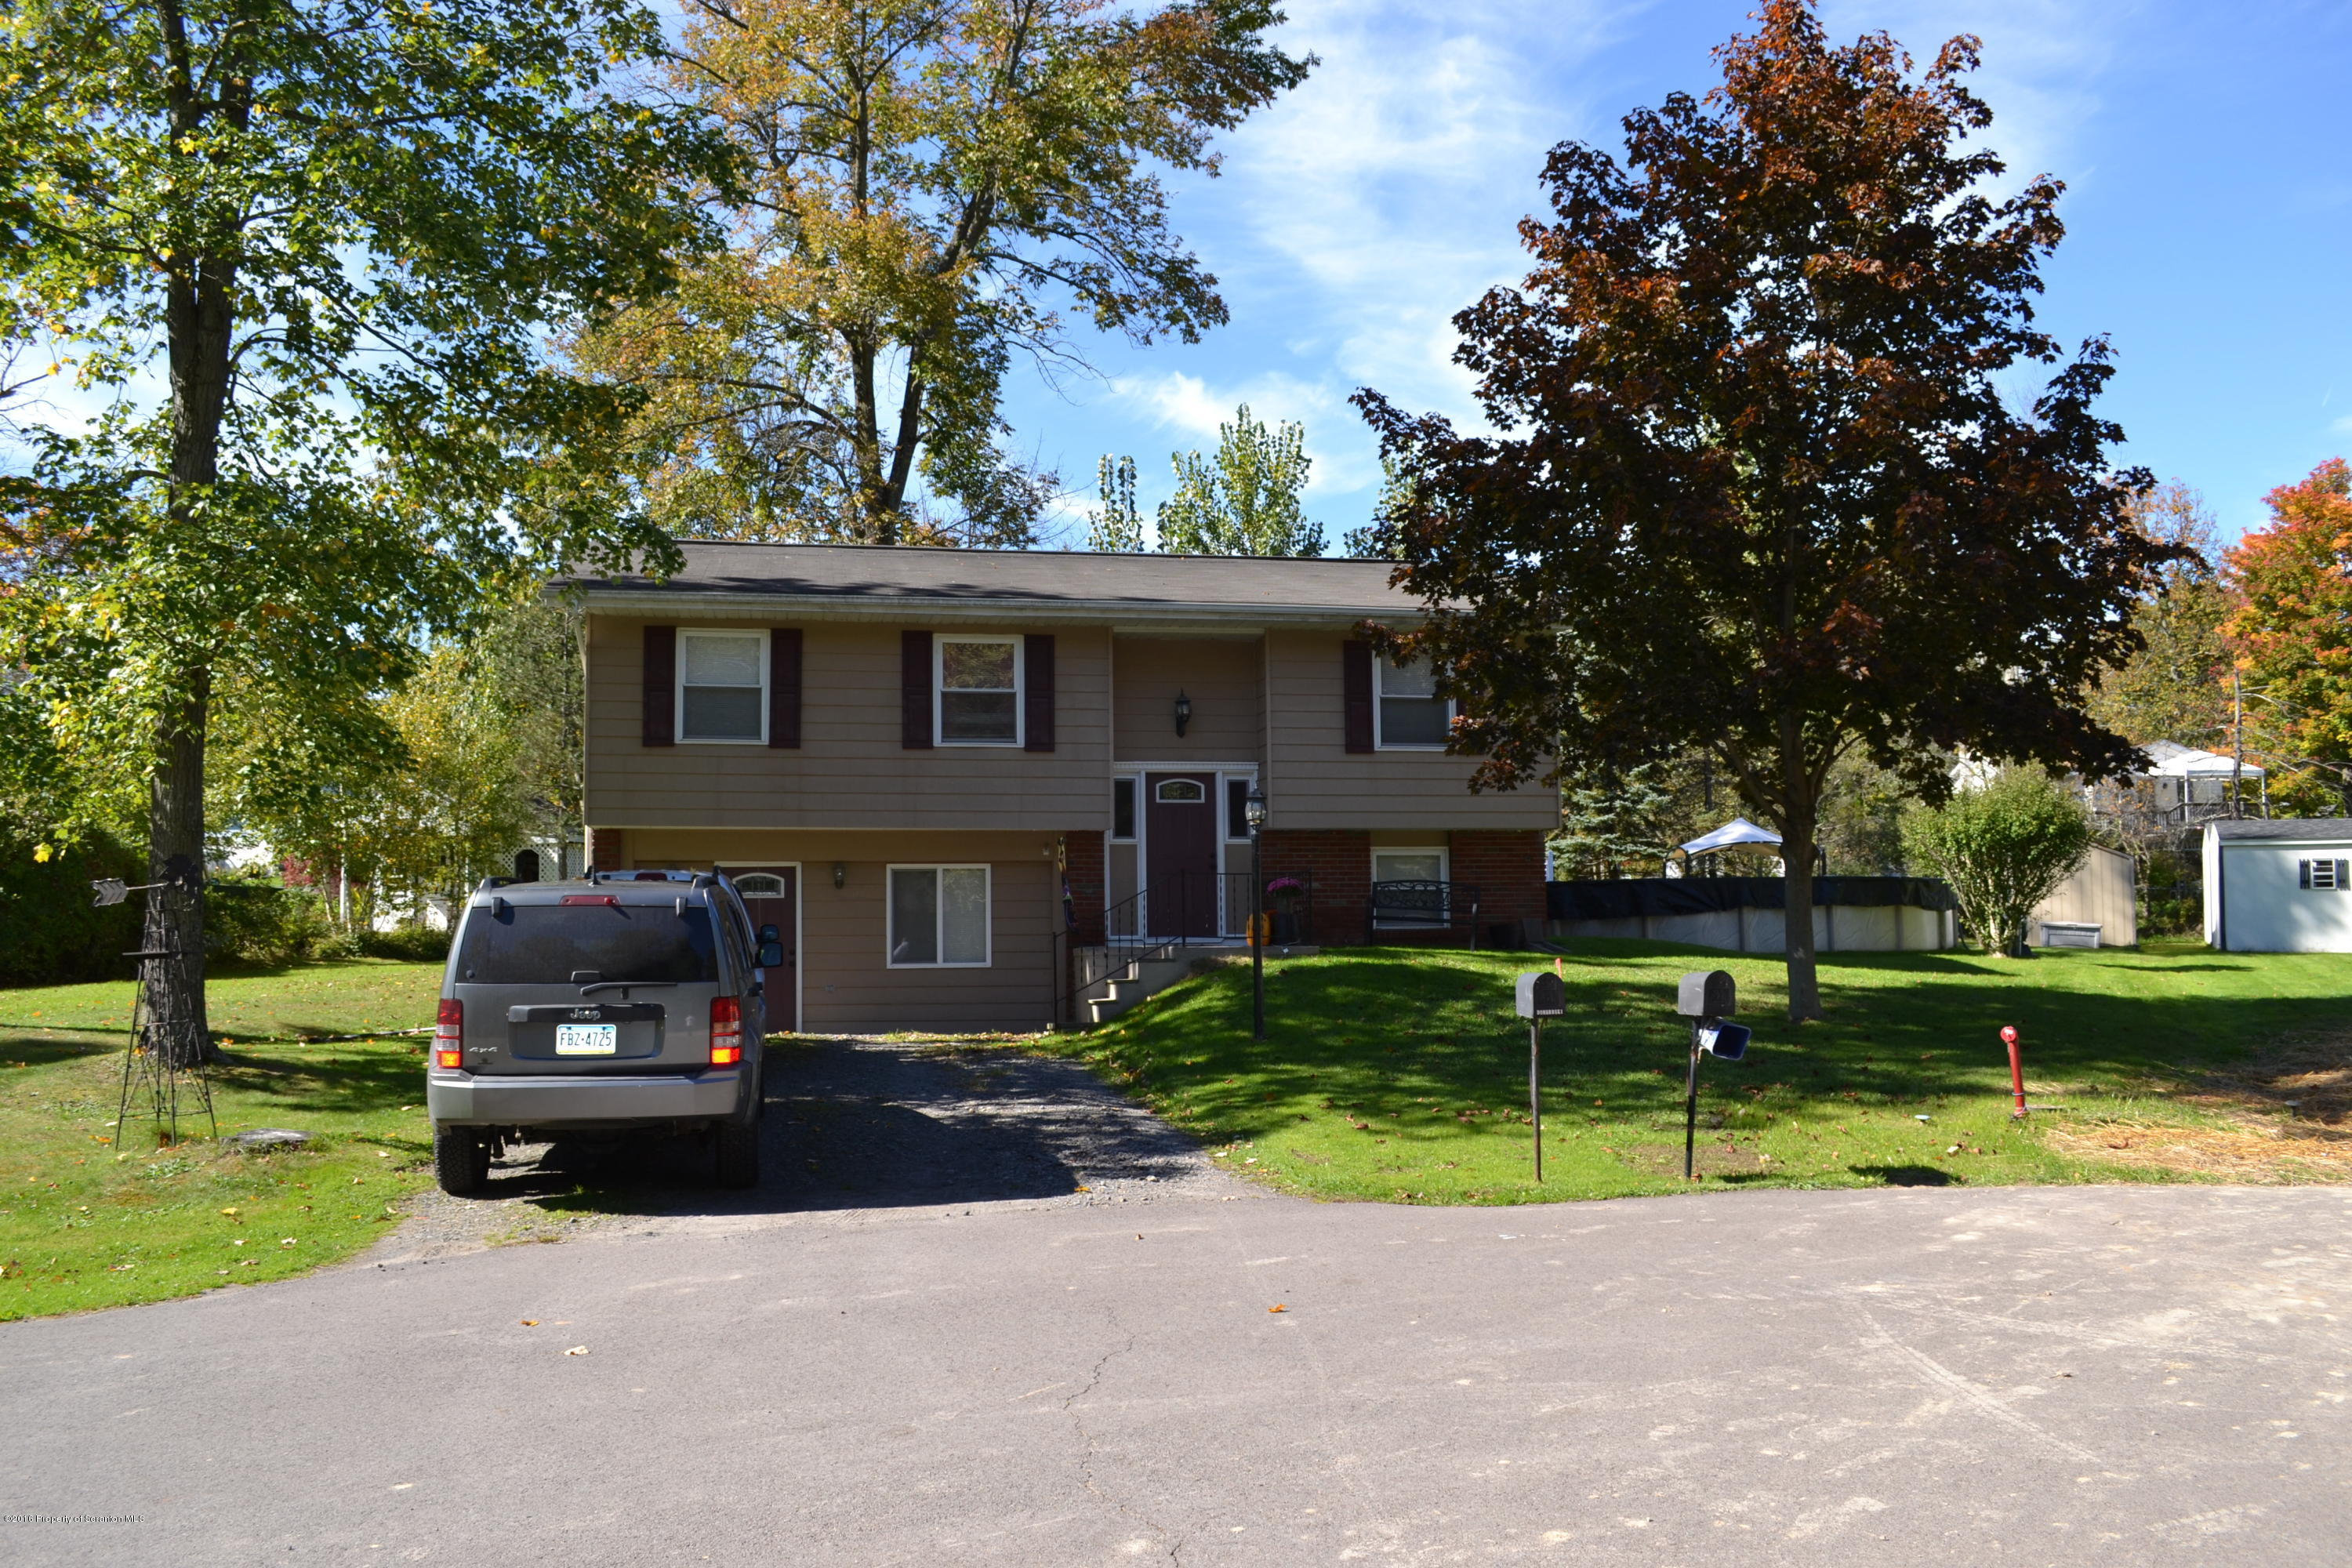 115 Colewood Circle, Tunkhannock, Pennsylvania 18657, 3 Bedrooms Bedrooms, 7 Rooms Rooms,2 BathroomsBathrooms,Single Family,For Sale,Colewood,16-4953